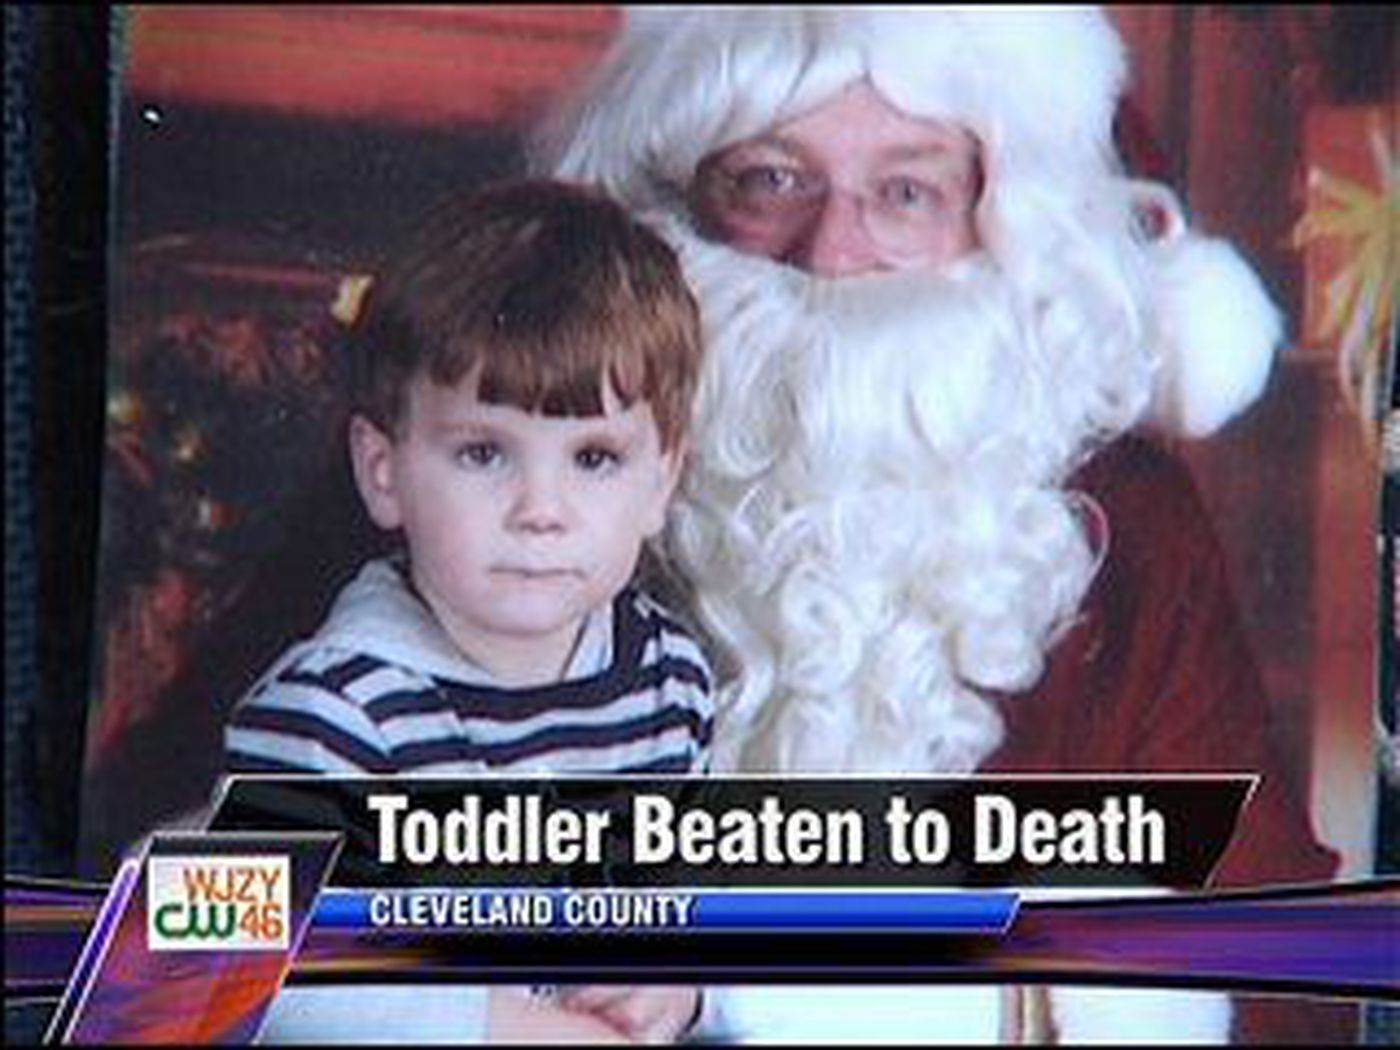 DSS releases statement about toddler beaten to death